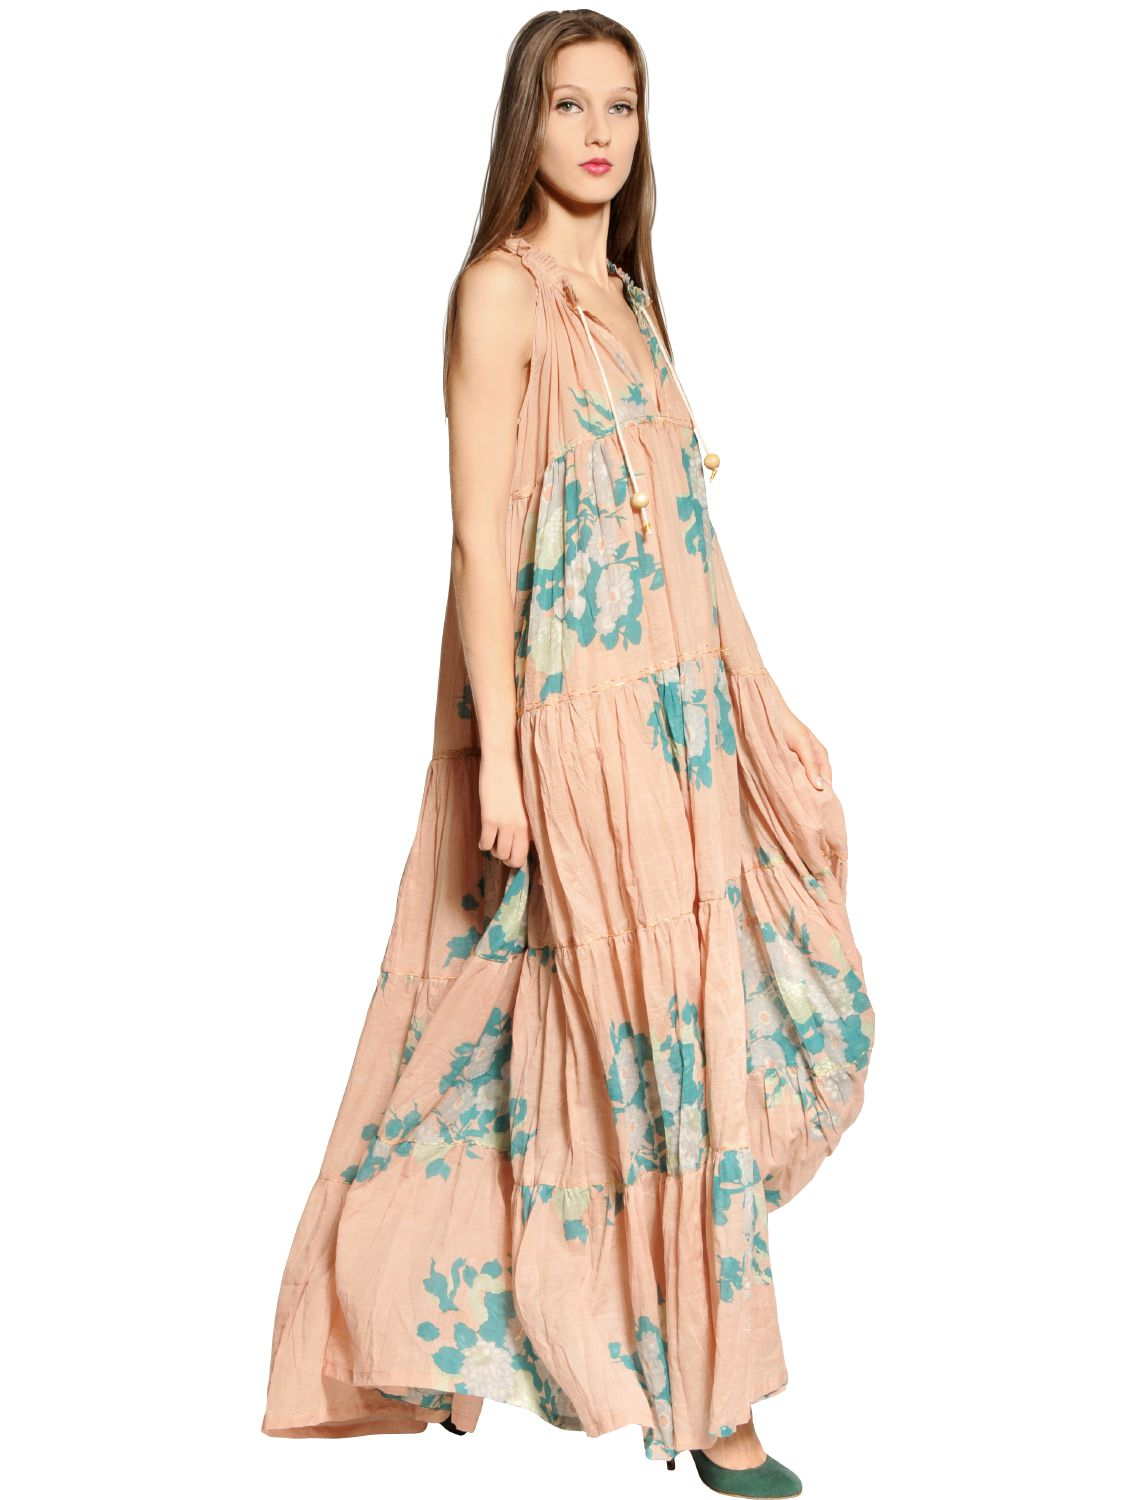 Cotton knit A-line dress offers all day style without sacrificing comfort. Wrinkle resistant A-line dress in floral print gently glides along the body and features rounded neckline/5(75).